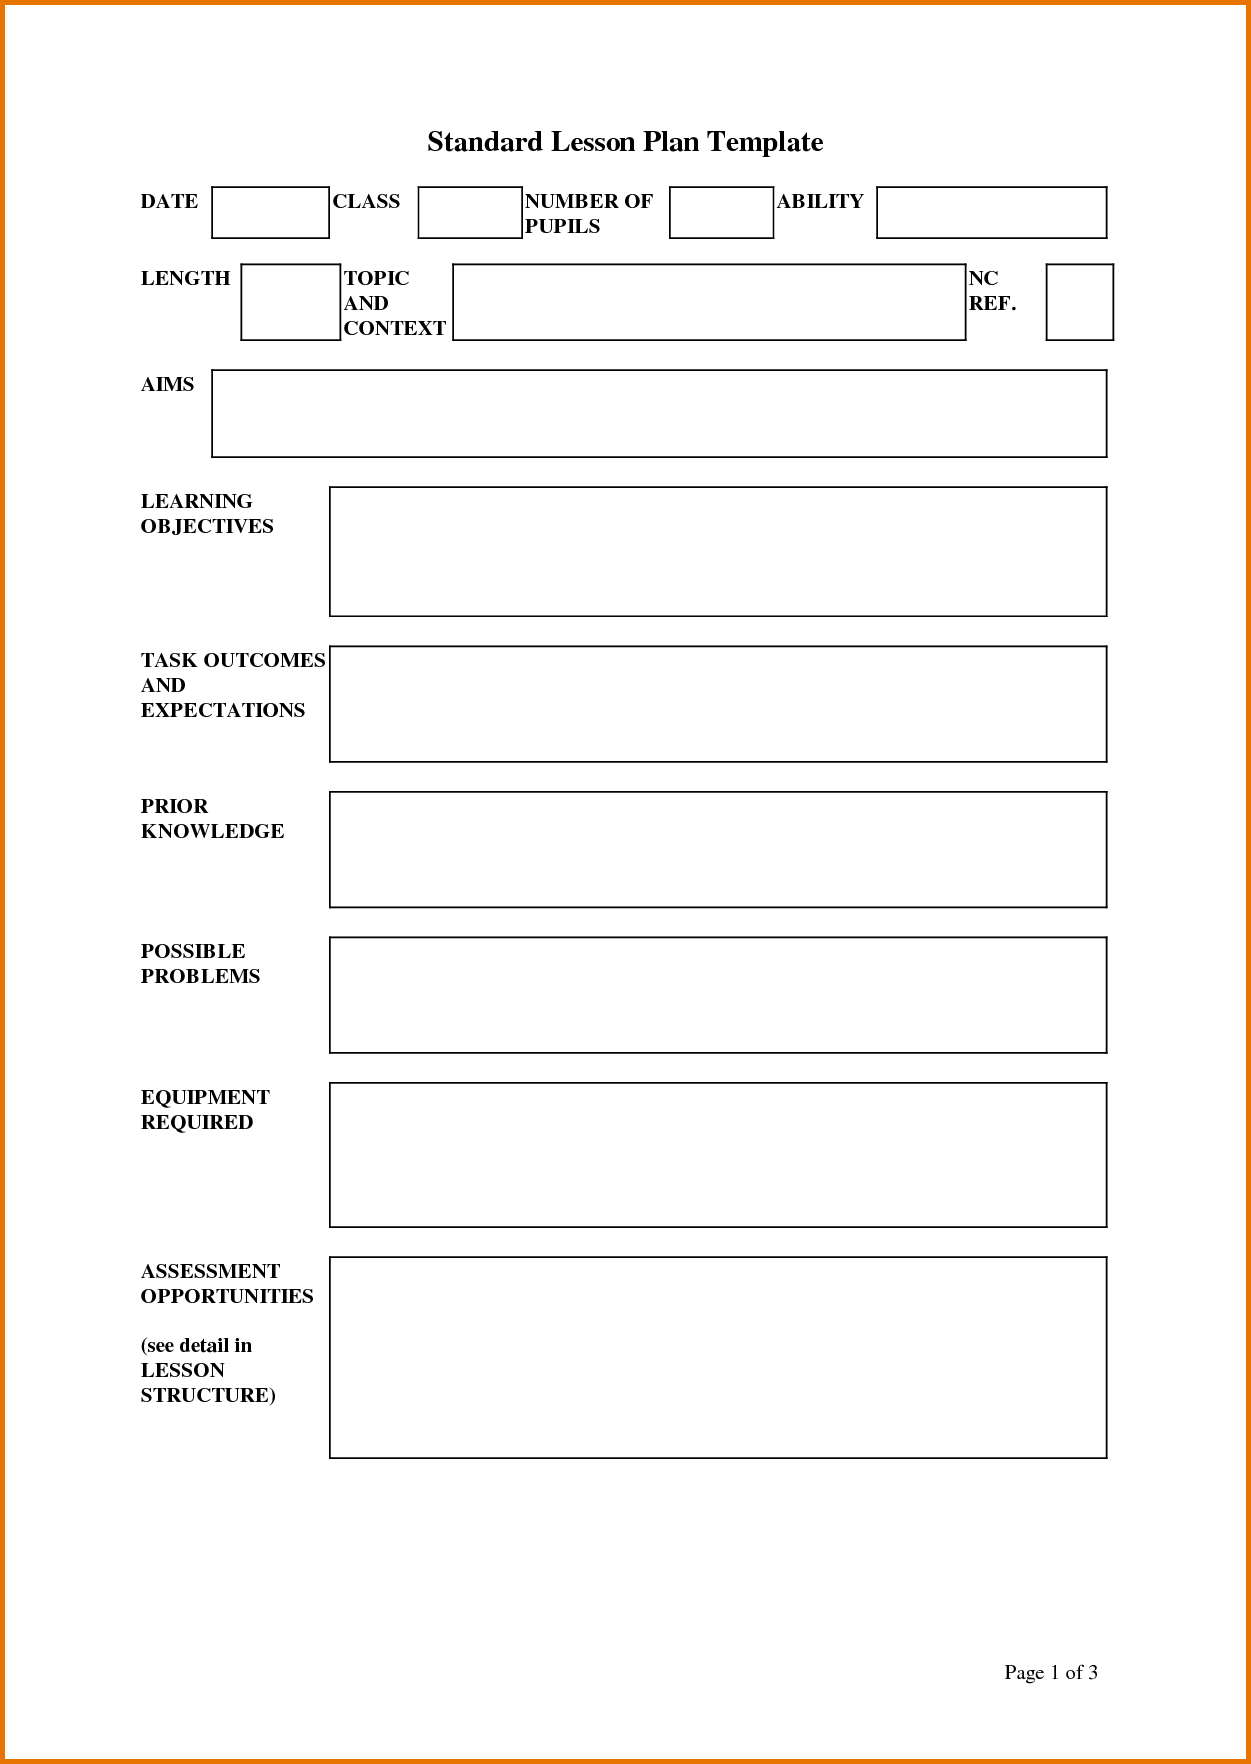 Standard Lesson Plan Template  Doc  Paperwork